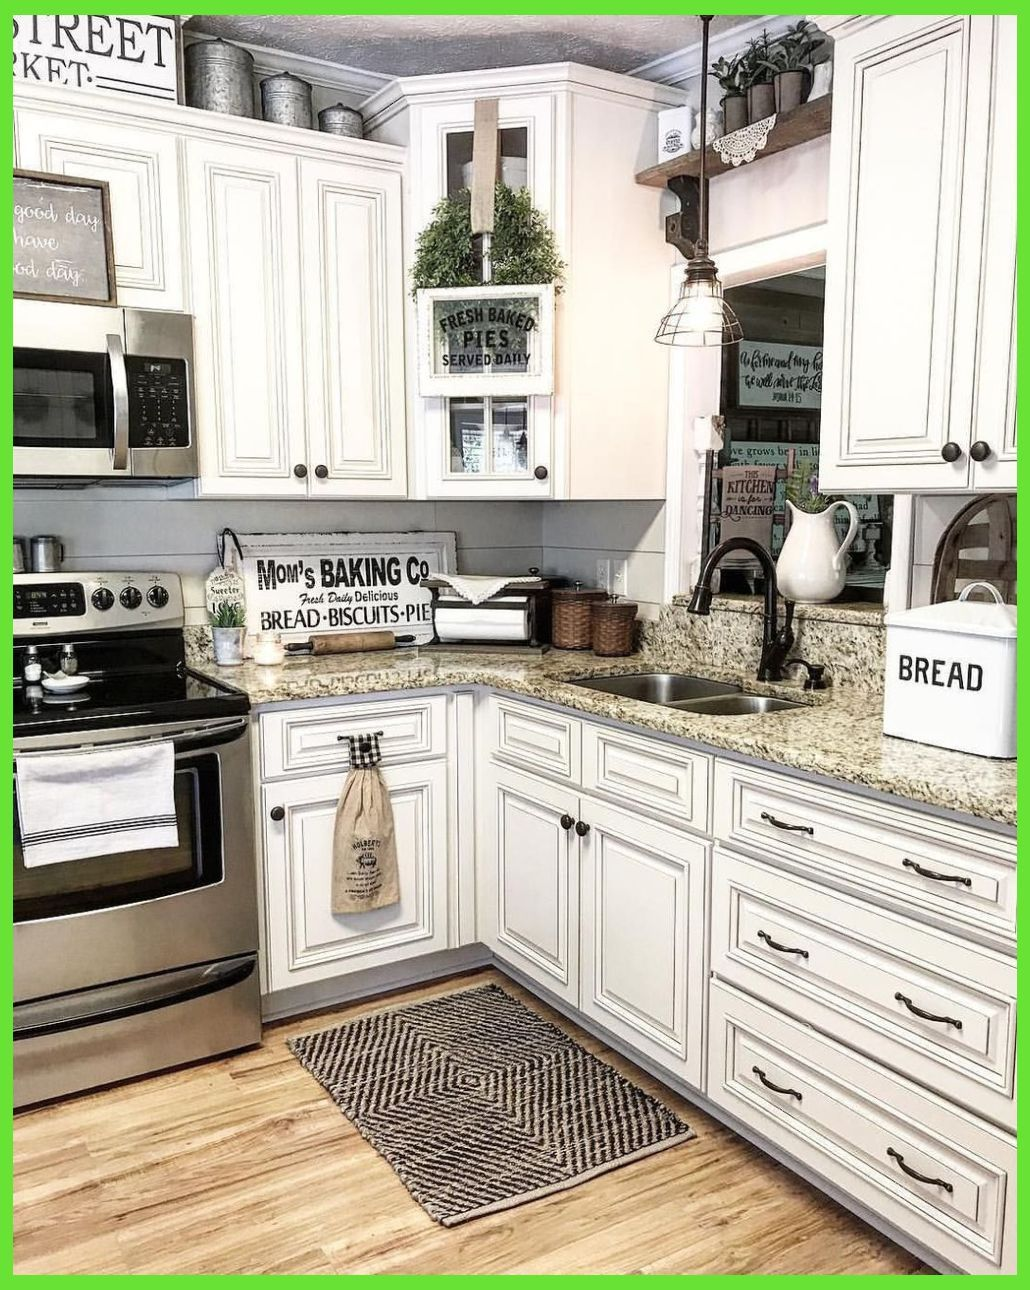 How to Go About Changing Your Kitchen Decor | Kitchen Decor Tips